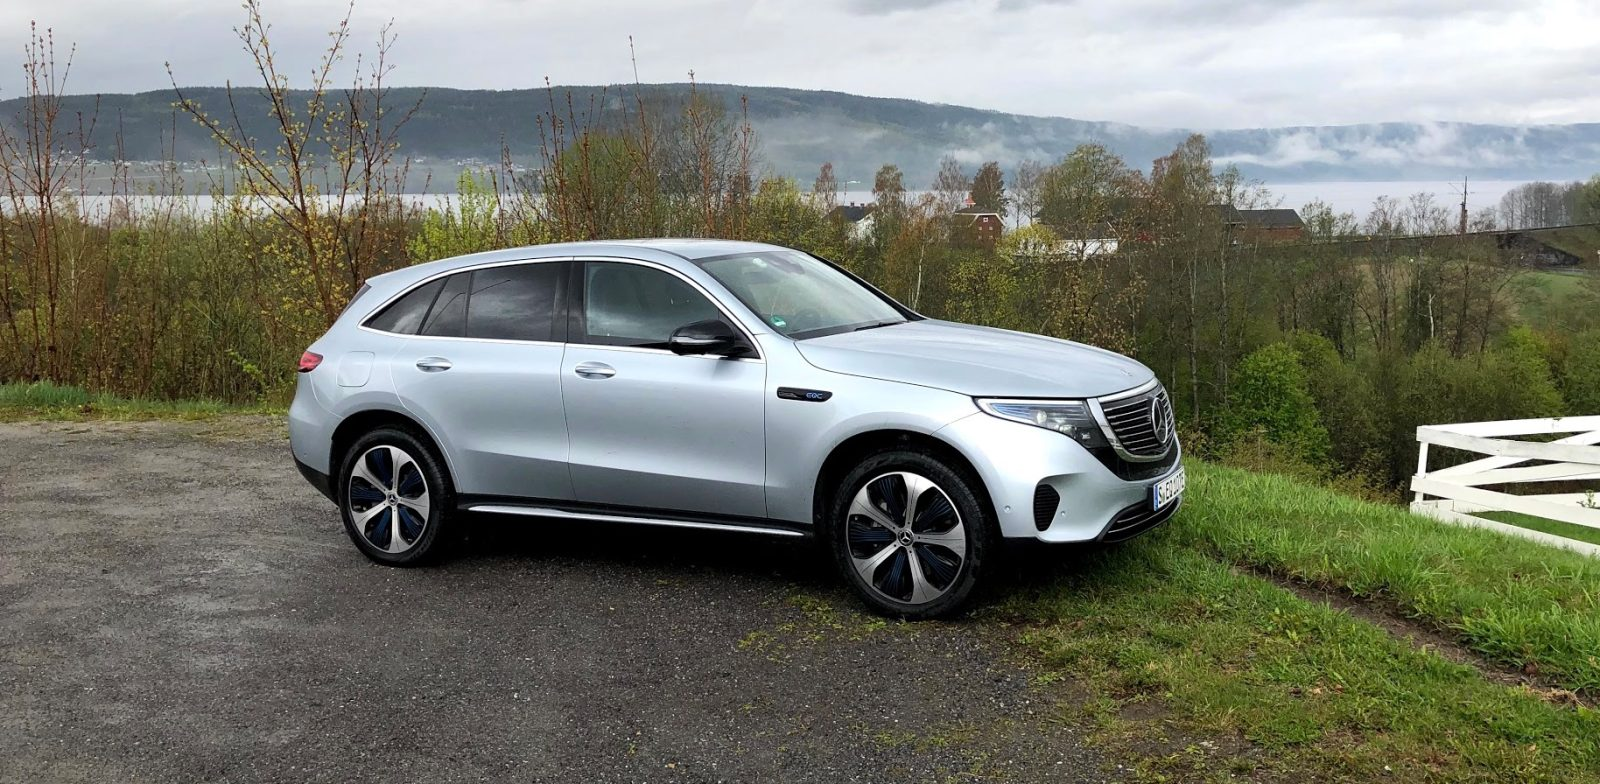 Mercedes Benz Eqc First Drive Review An Easy Way For Drivers To Go Electric